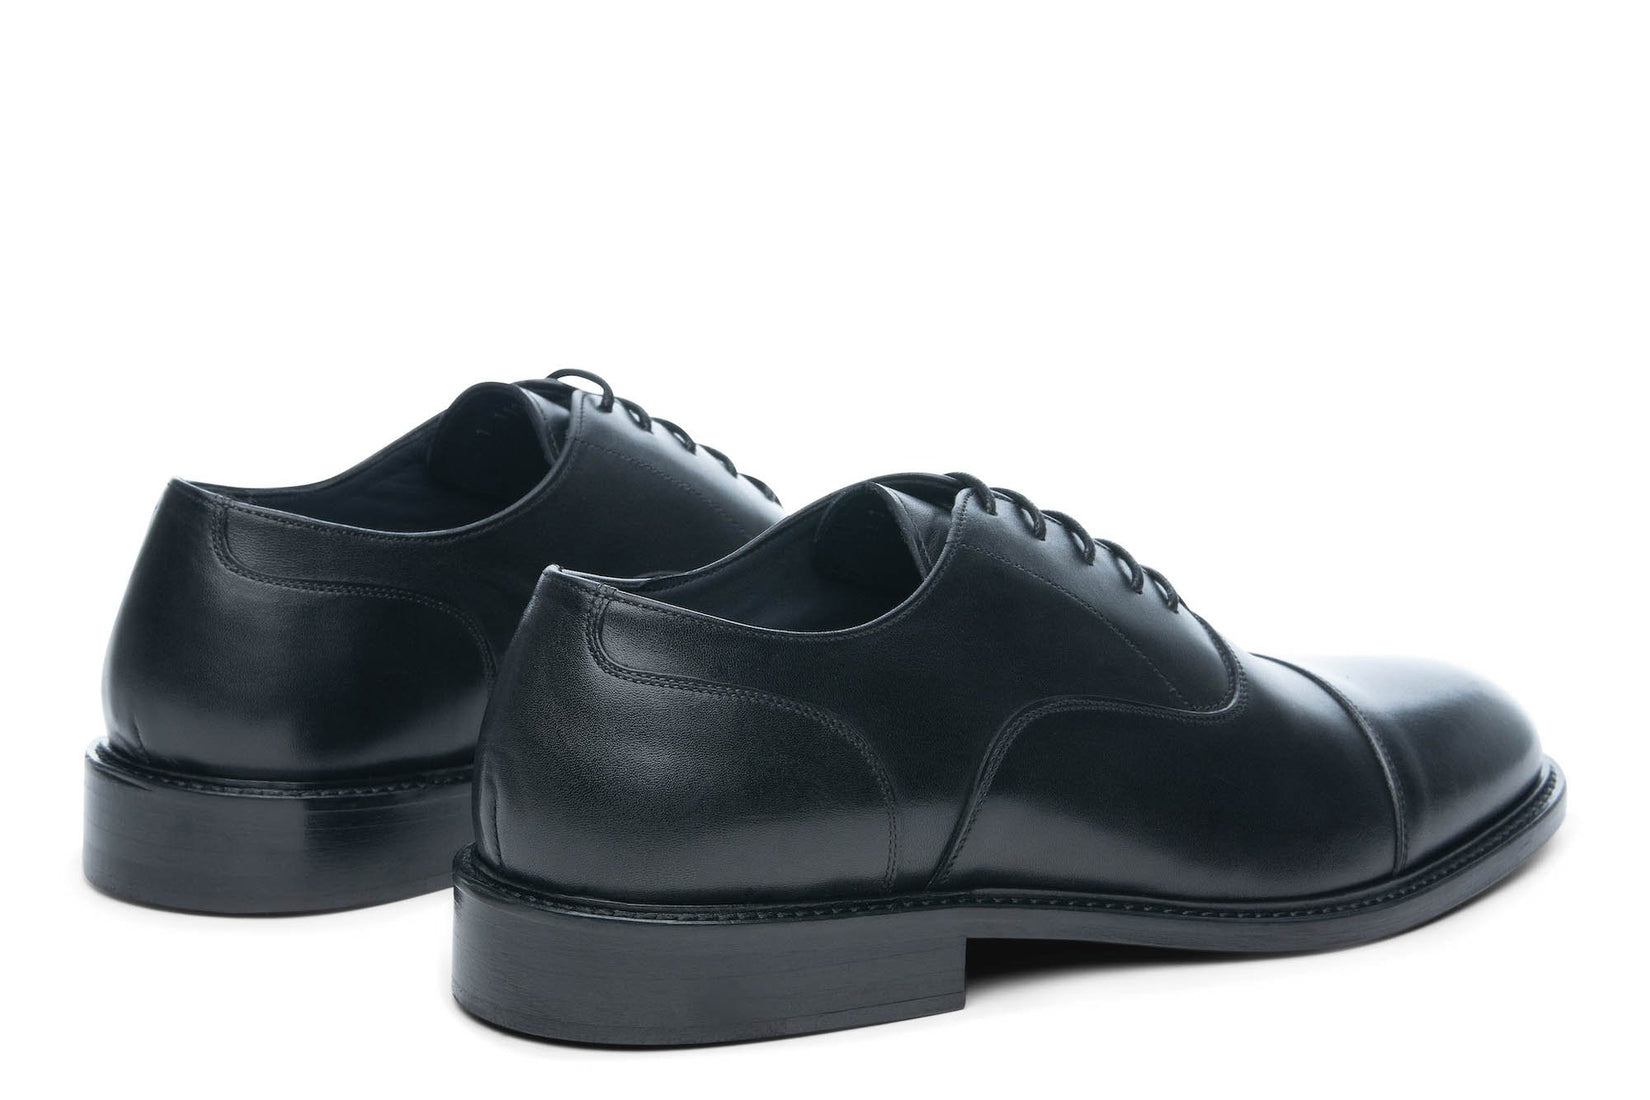 Monday Cap-Toe in Black